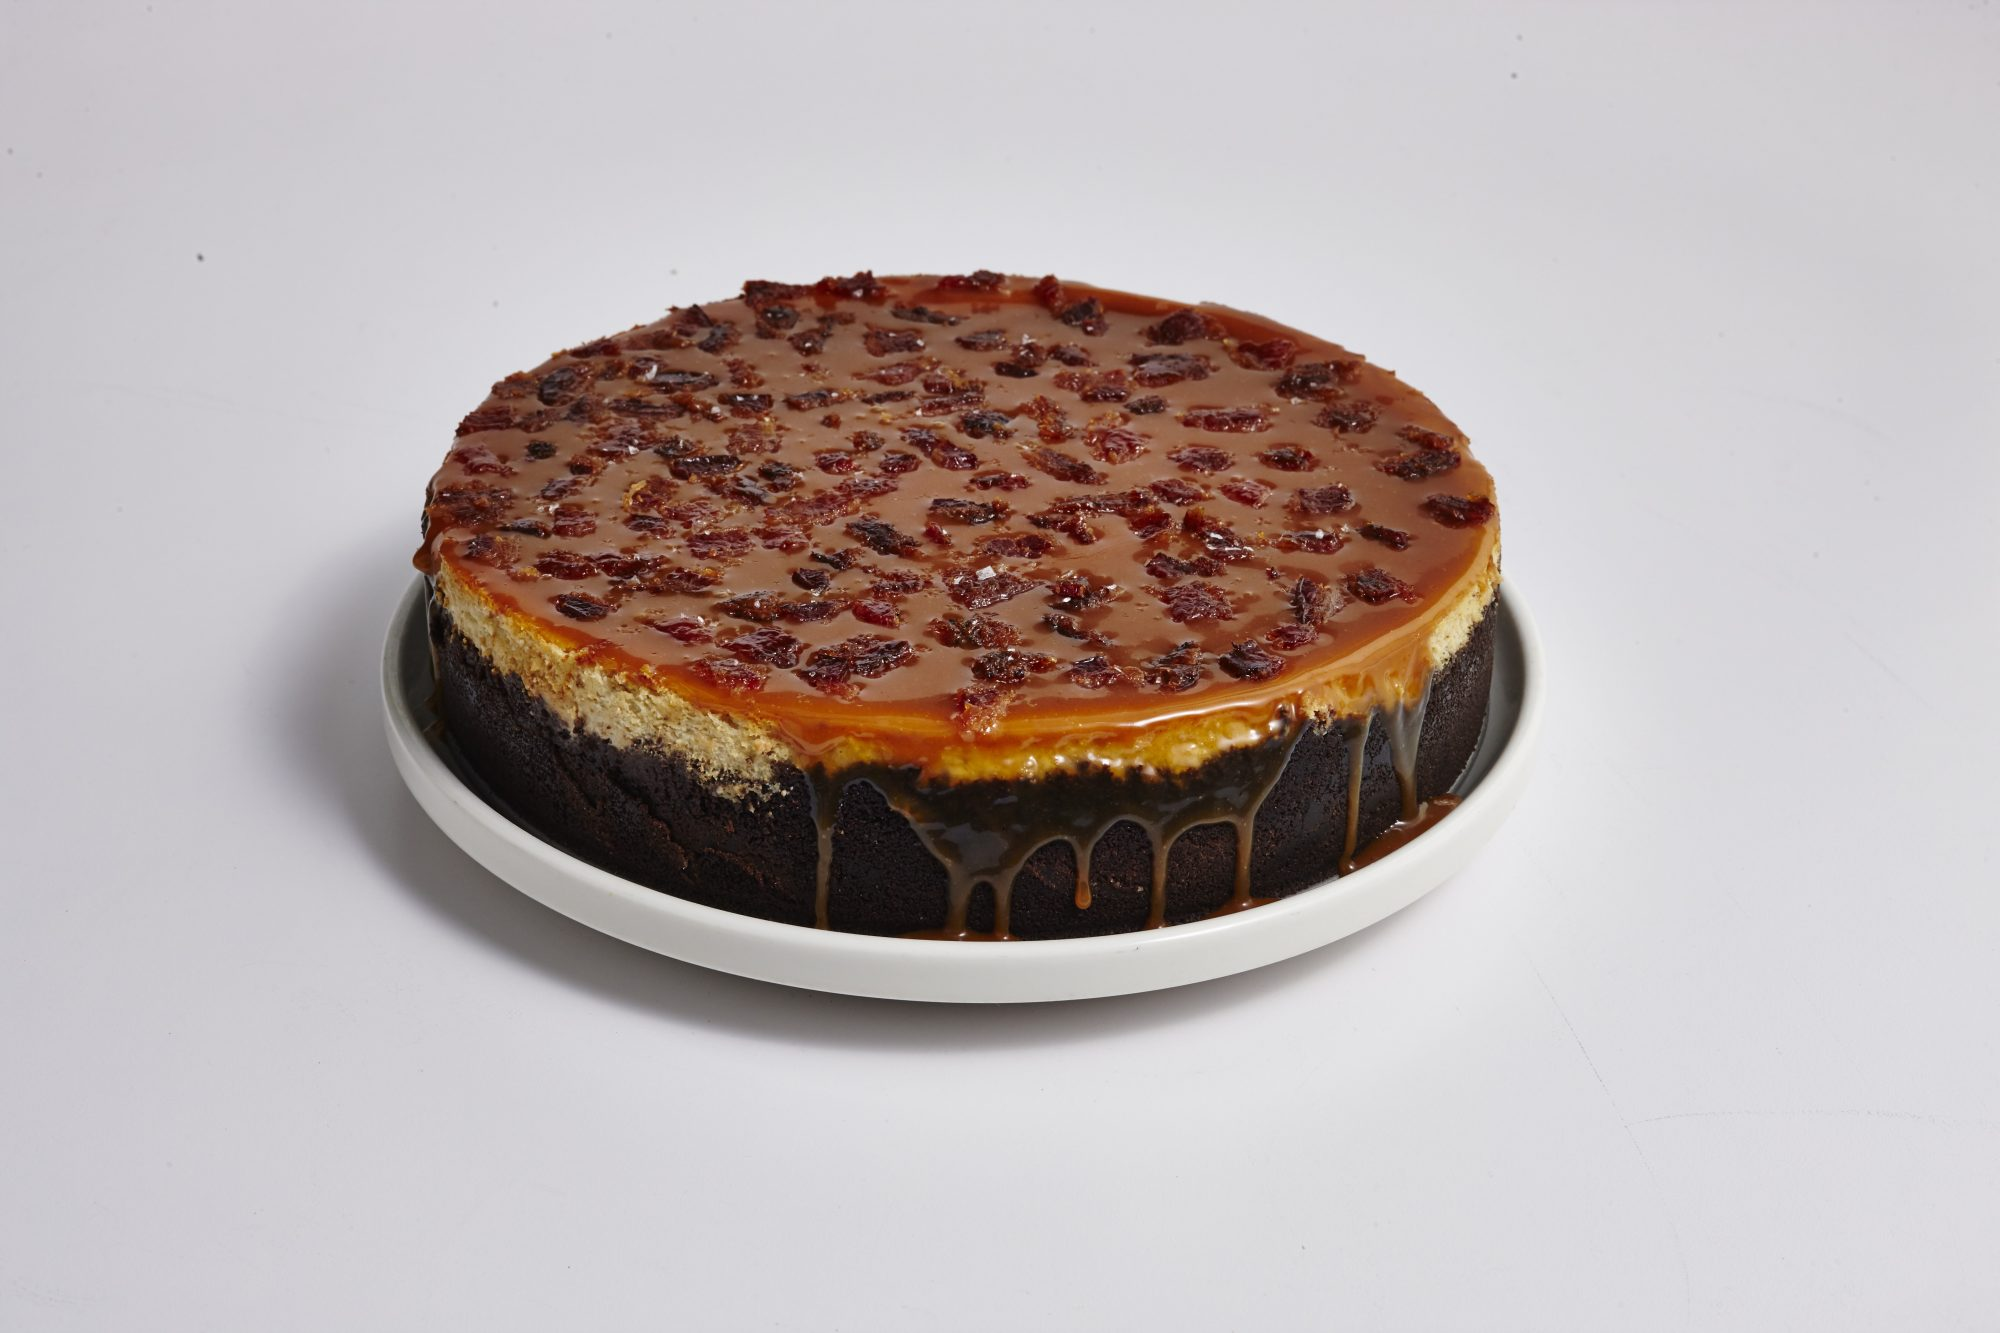 Peanut Butter and Banana Cheesecake with Candied Bacon